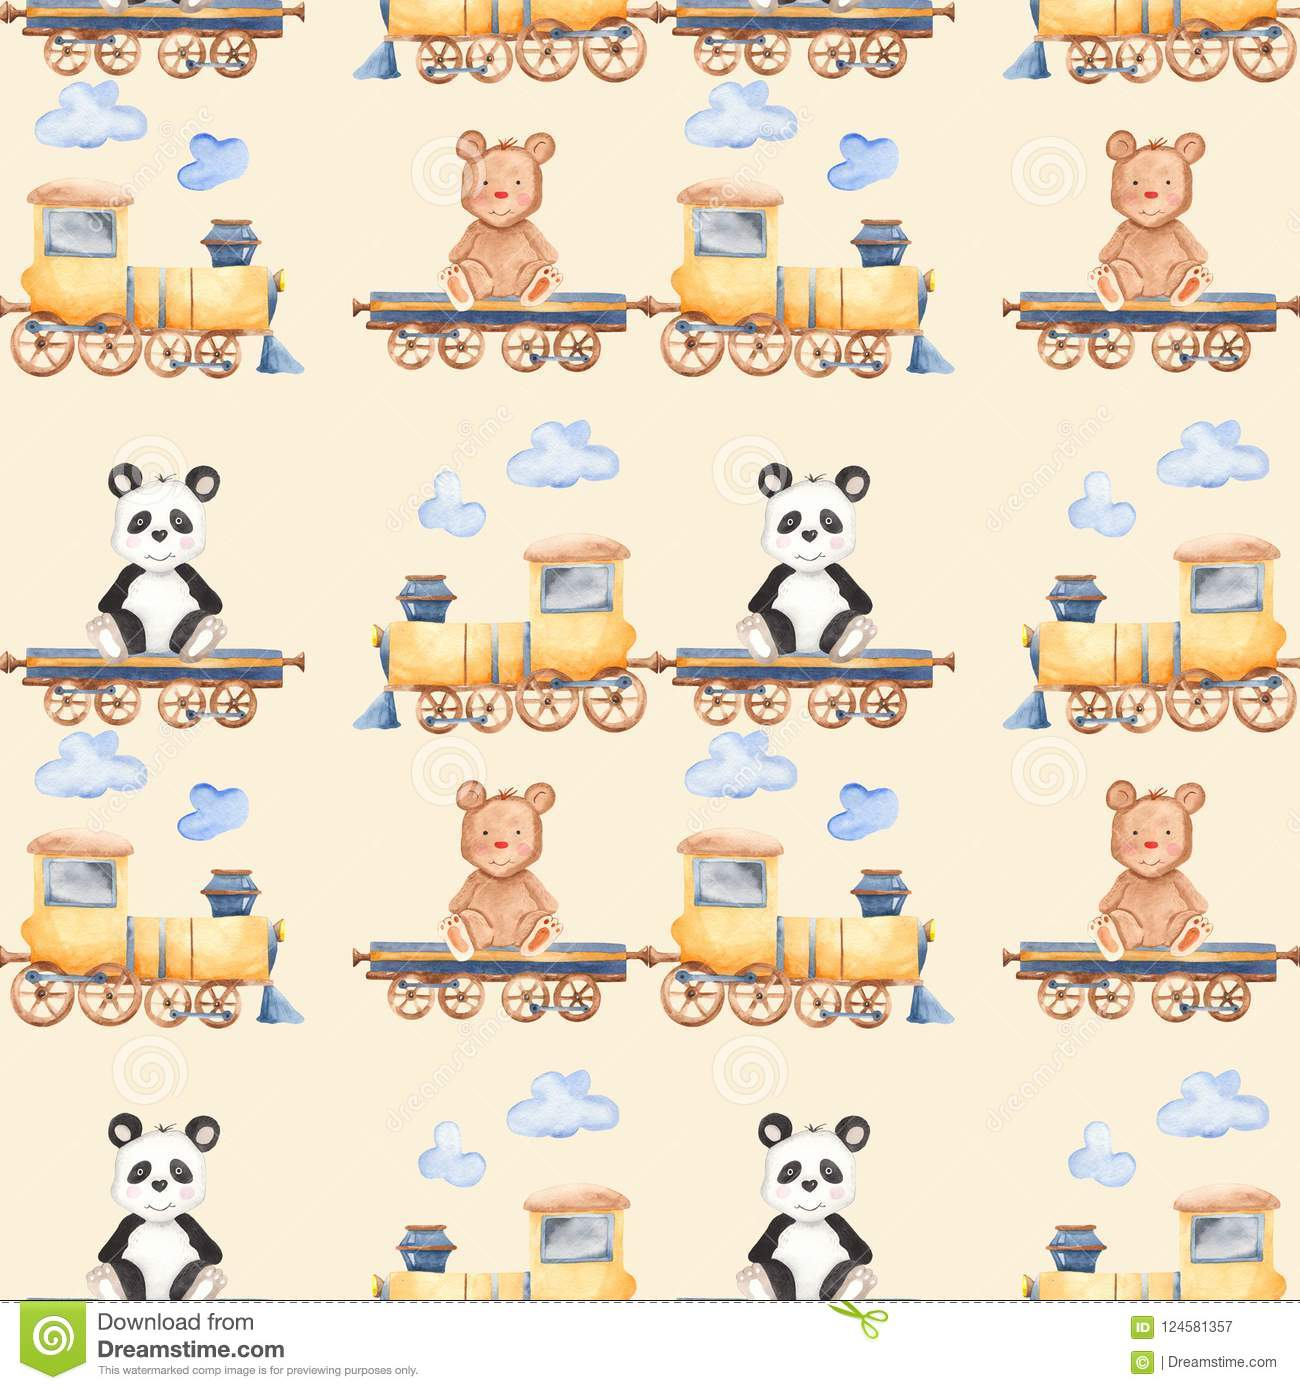 Watercolor Pattern With Cartoon Bears On The Train. Stock ...